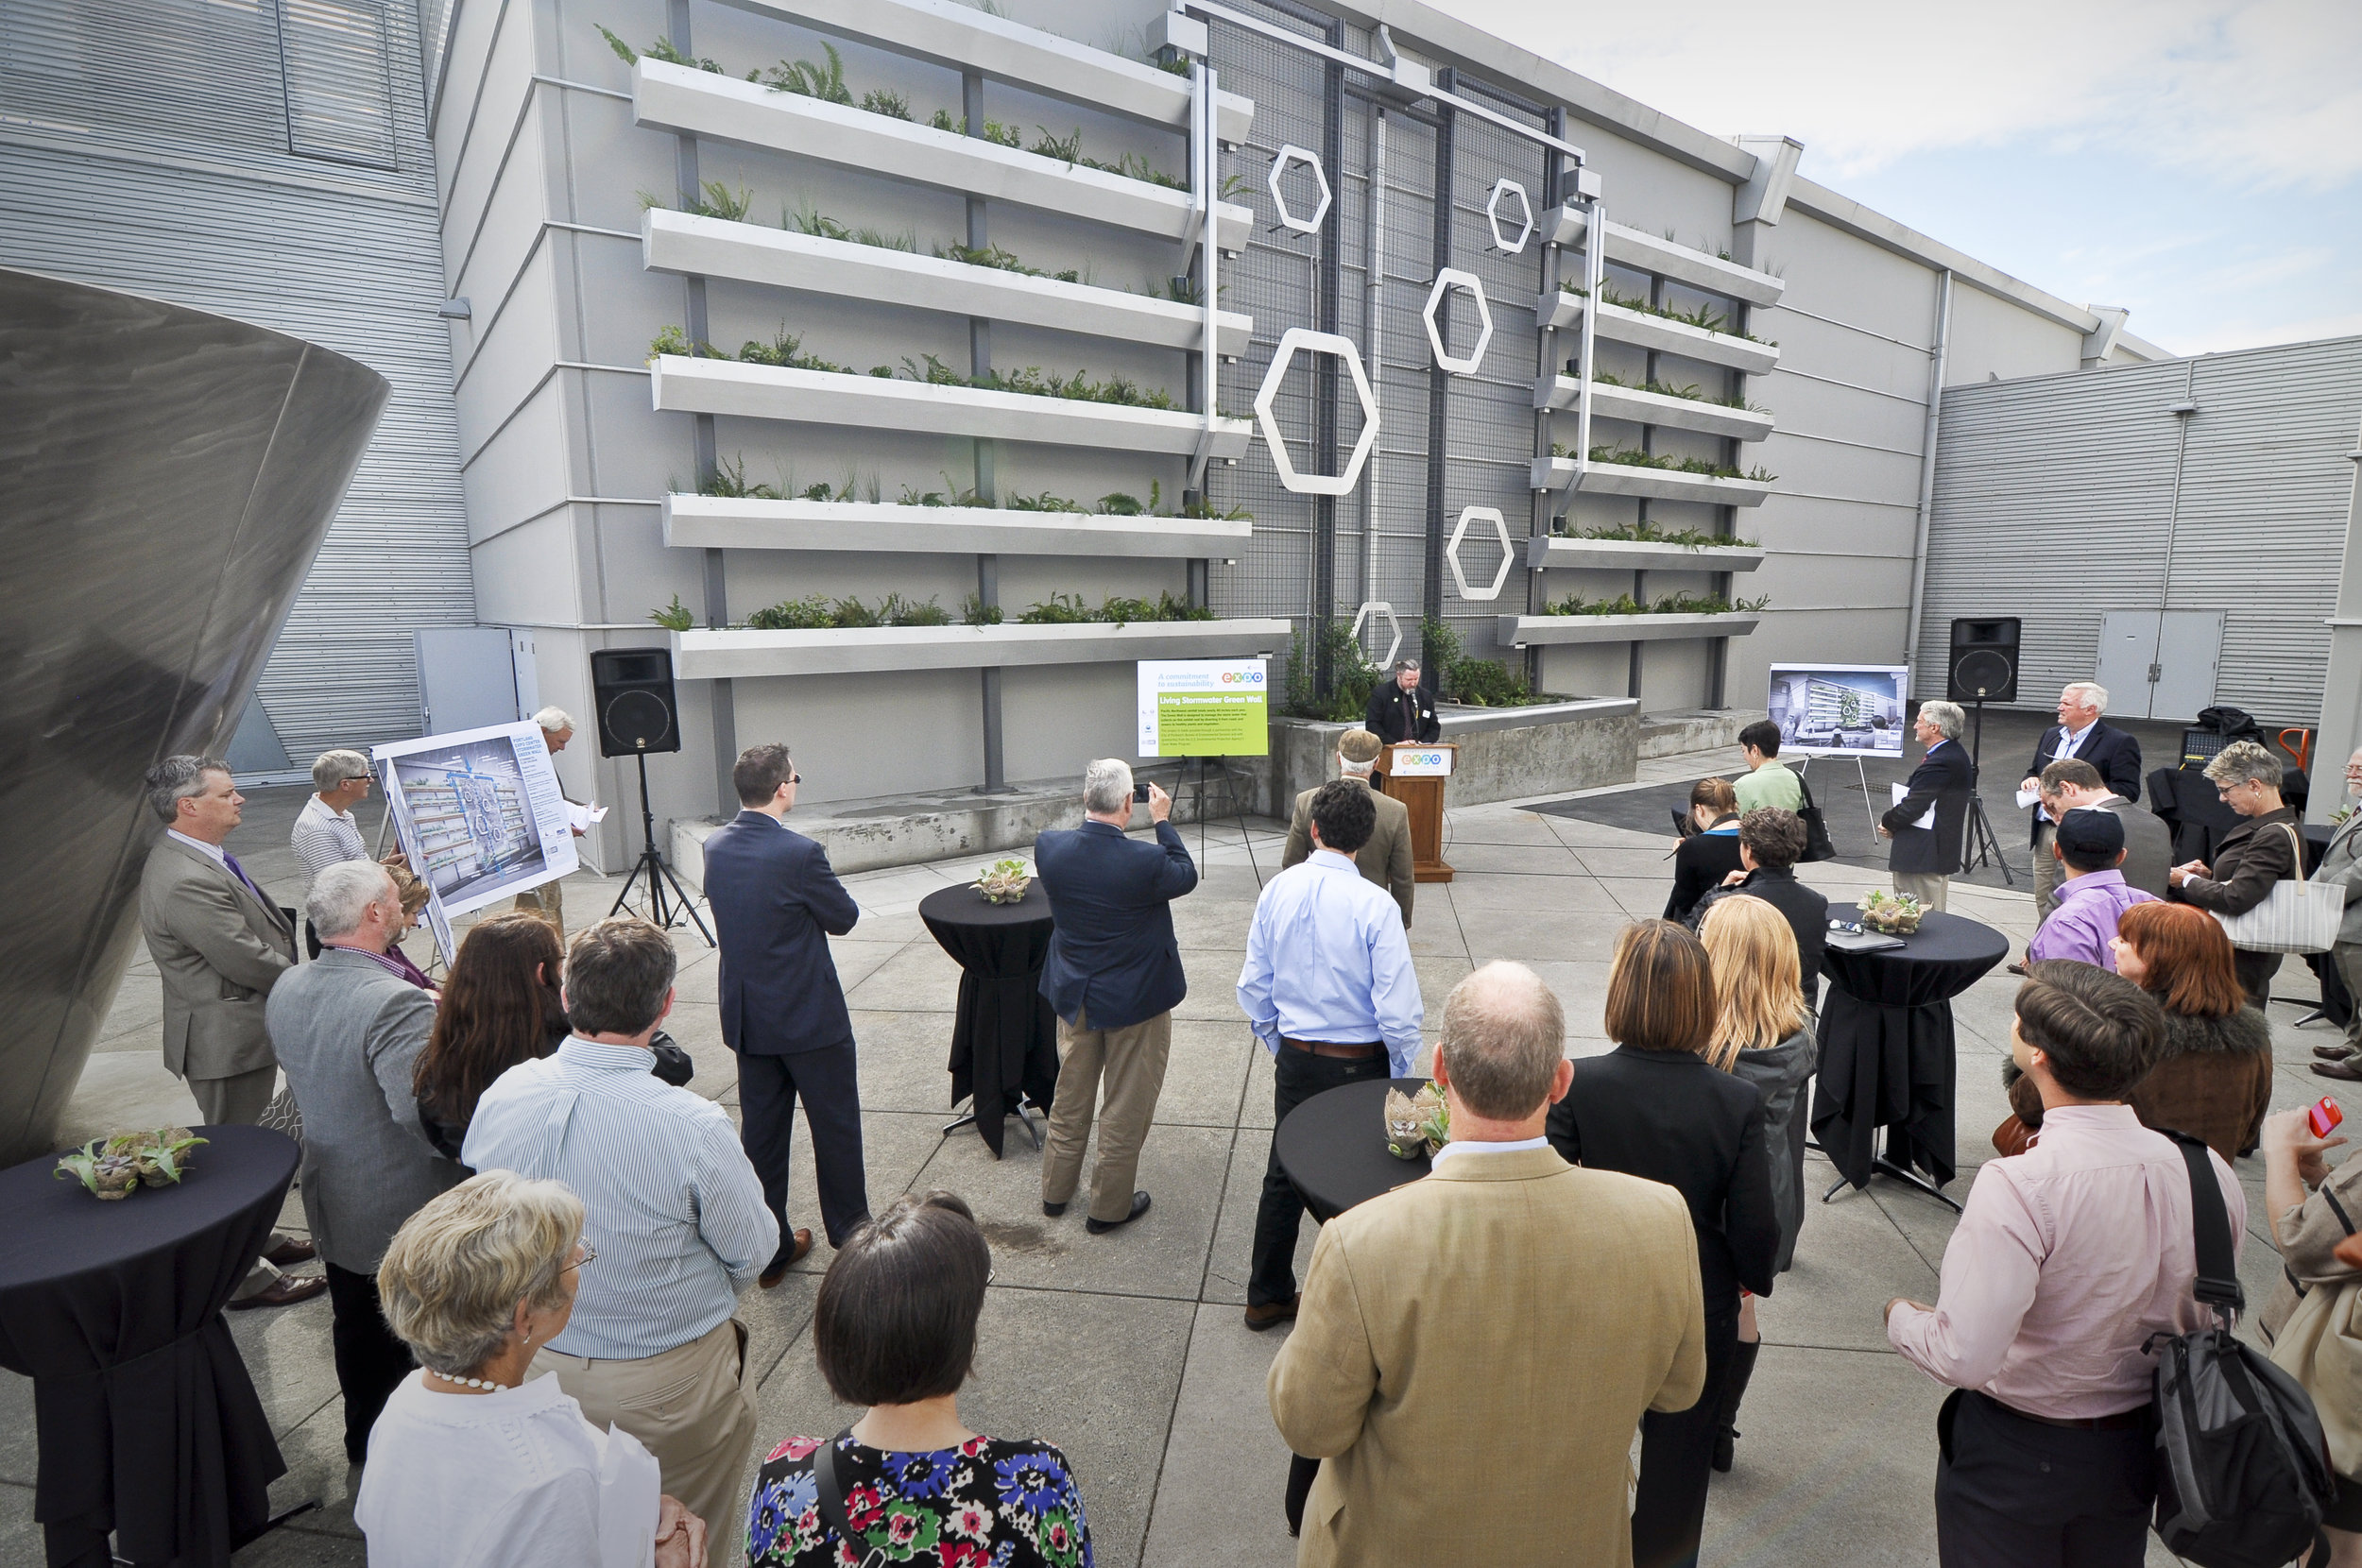 crowd gathers at grand opening of metro stormwater wall, empty podium at the center